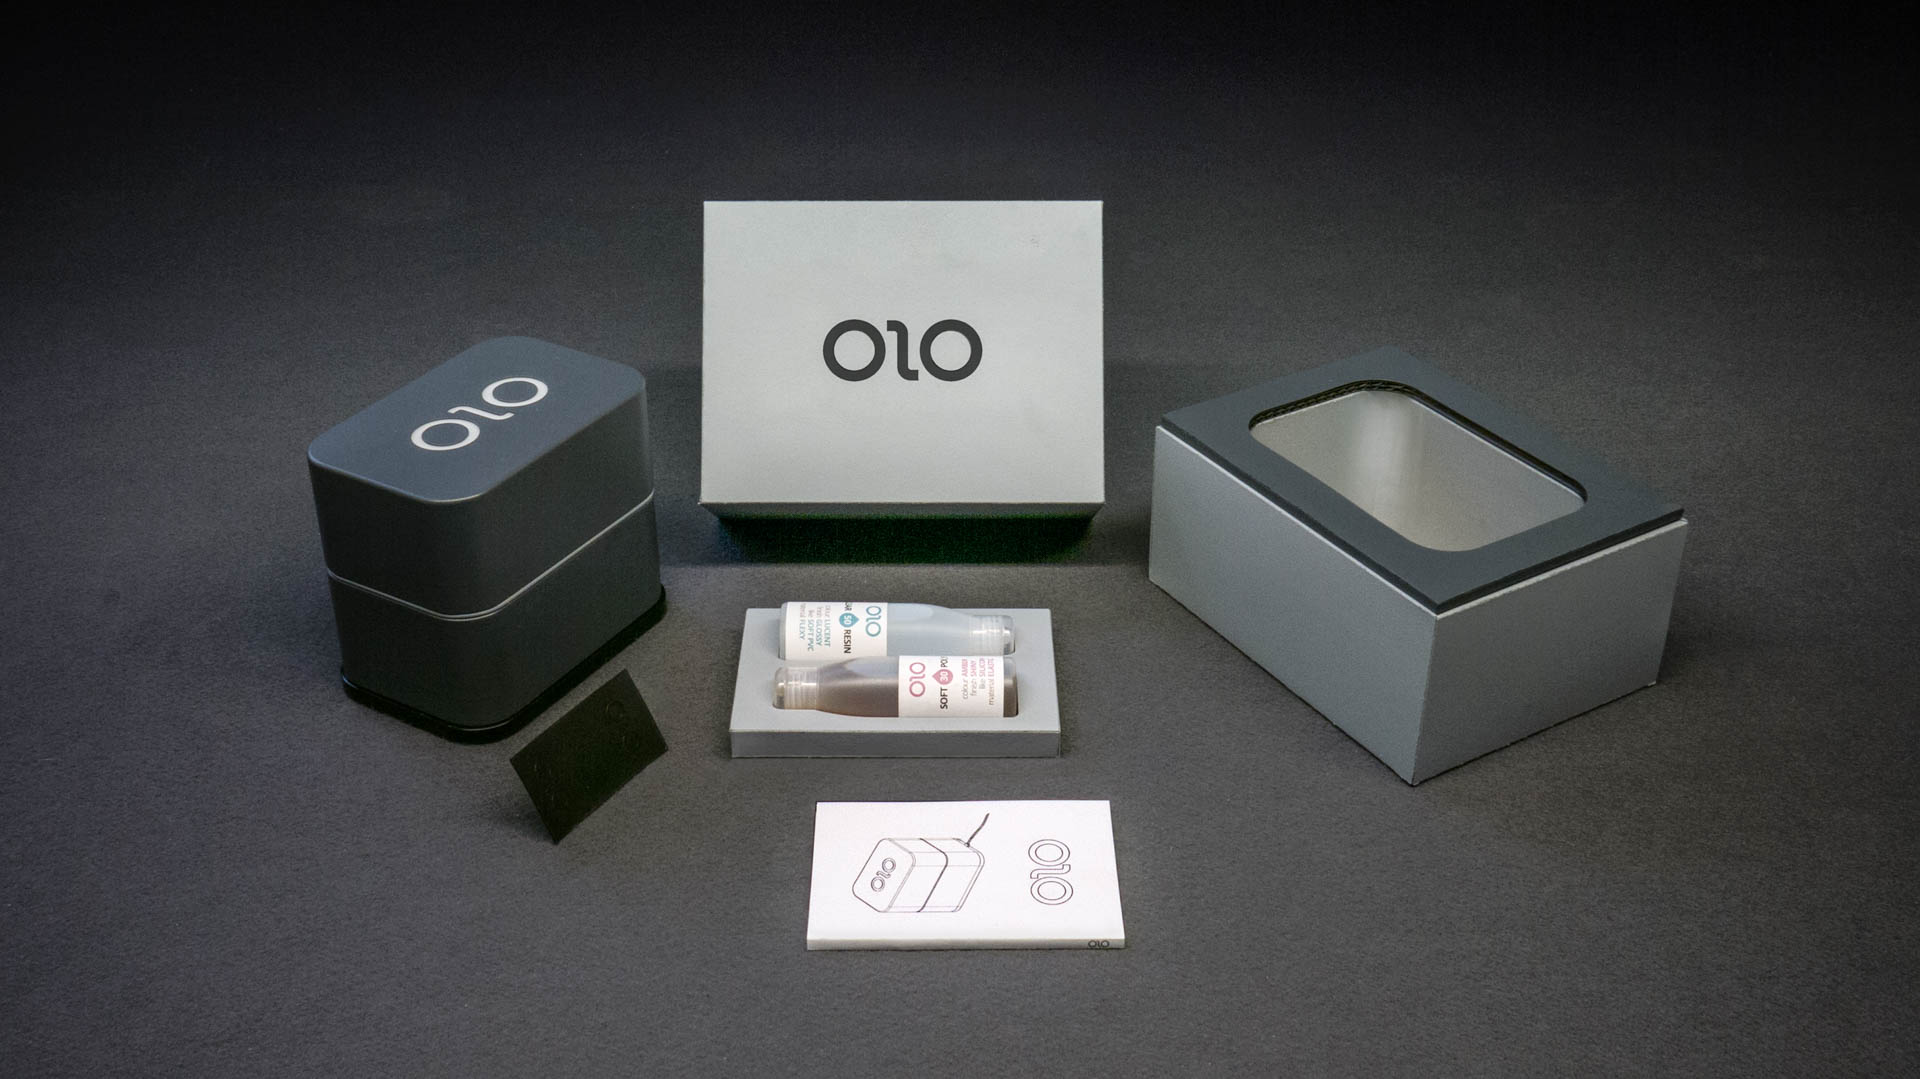 olo 3d smartphone printer kit